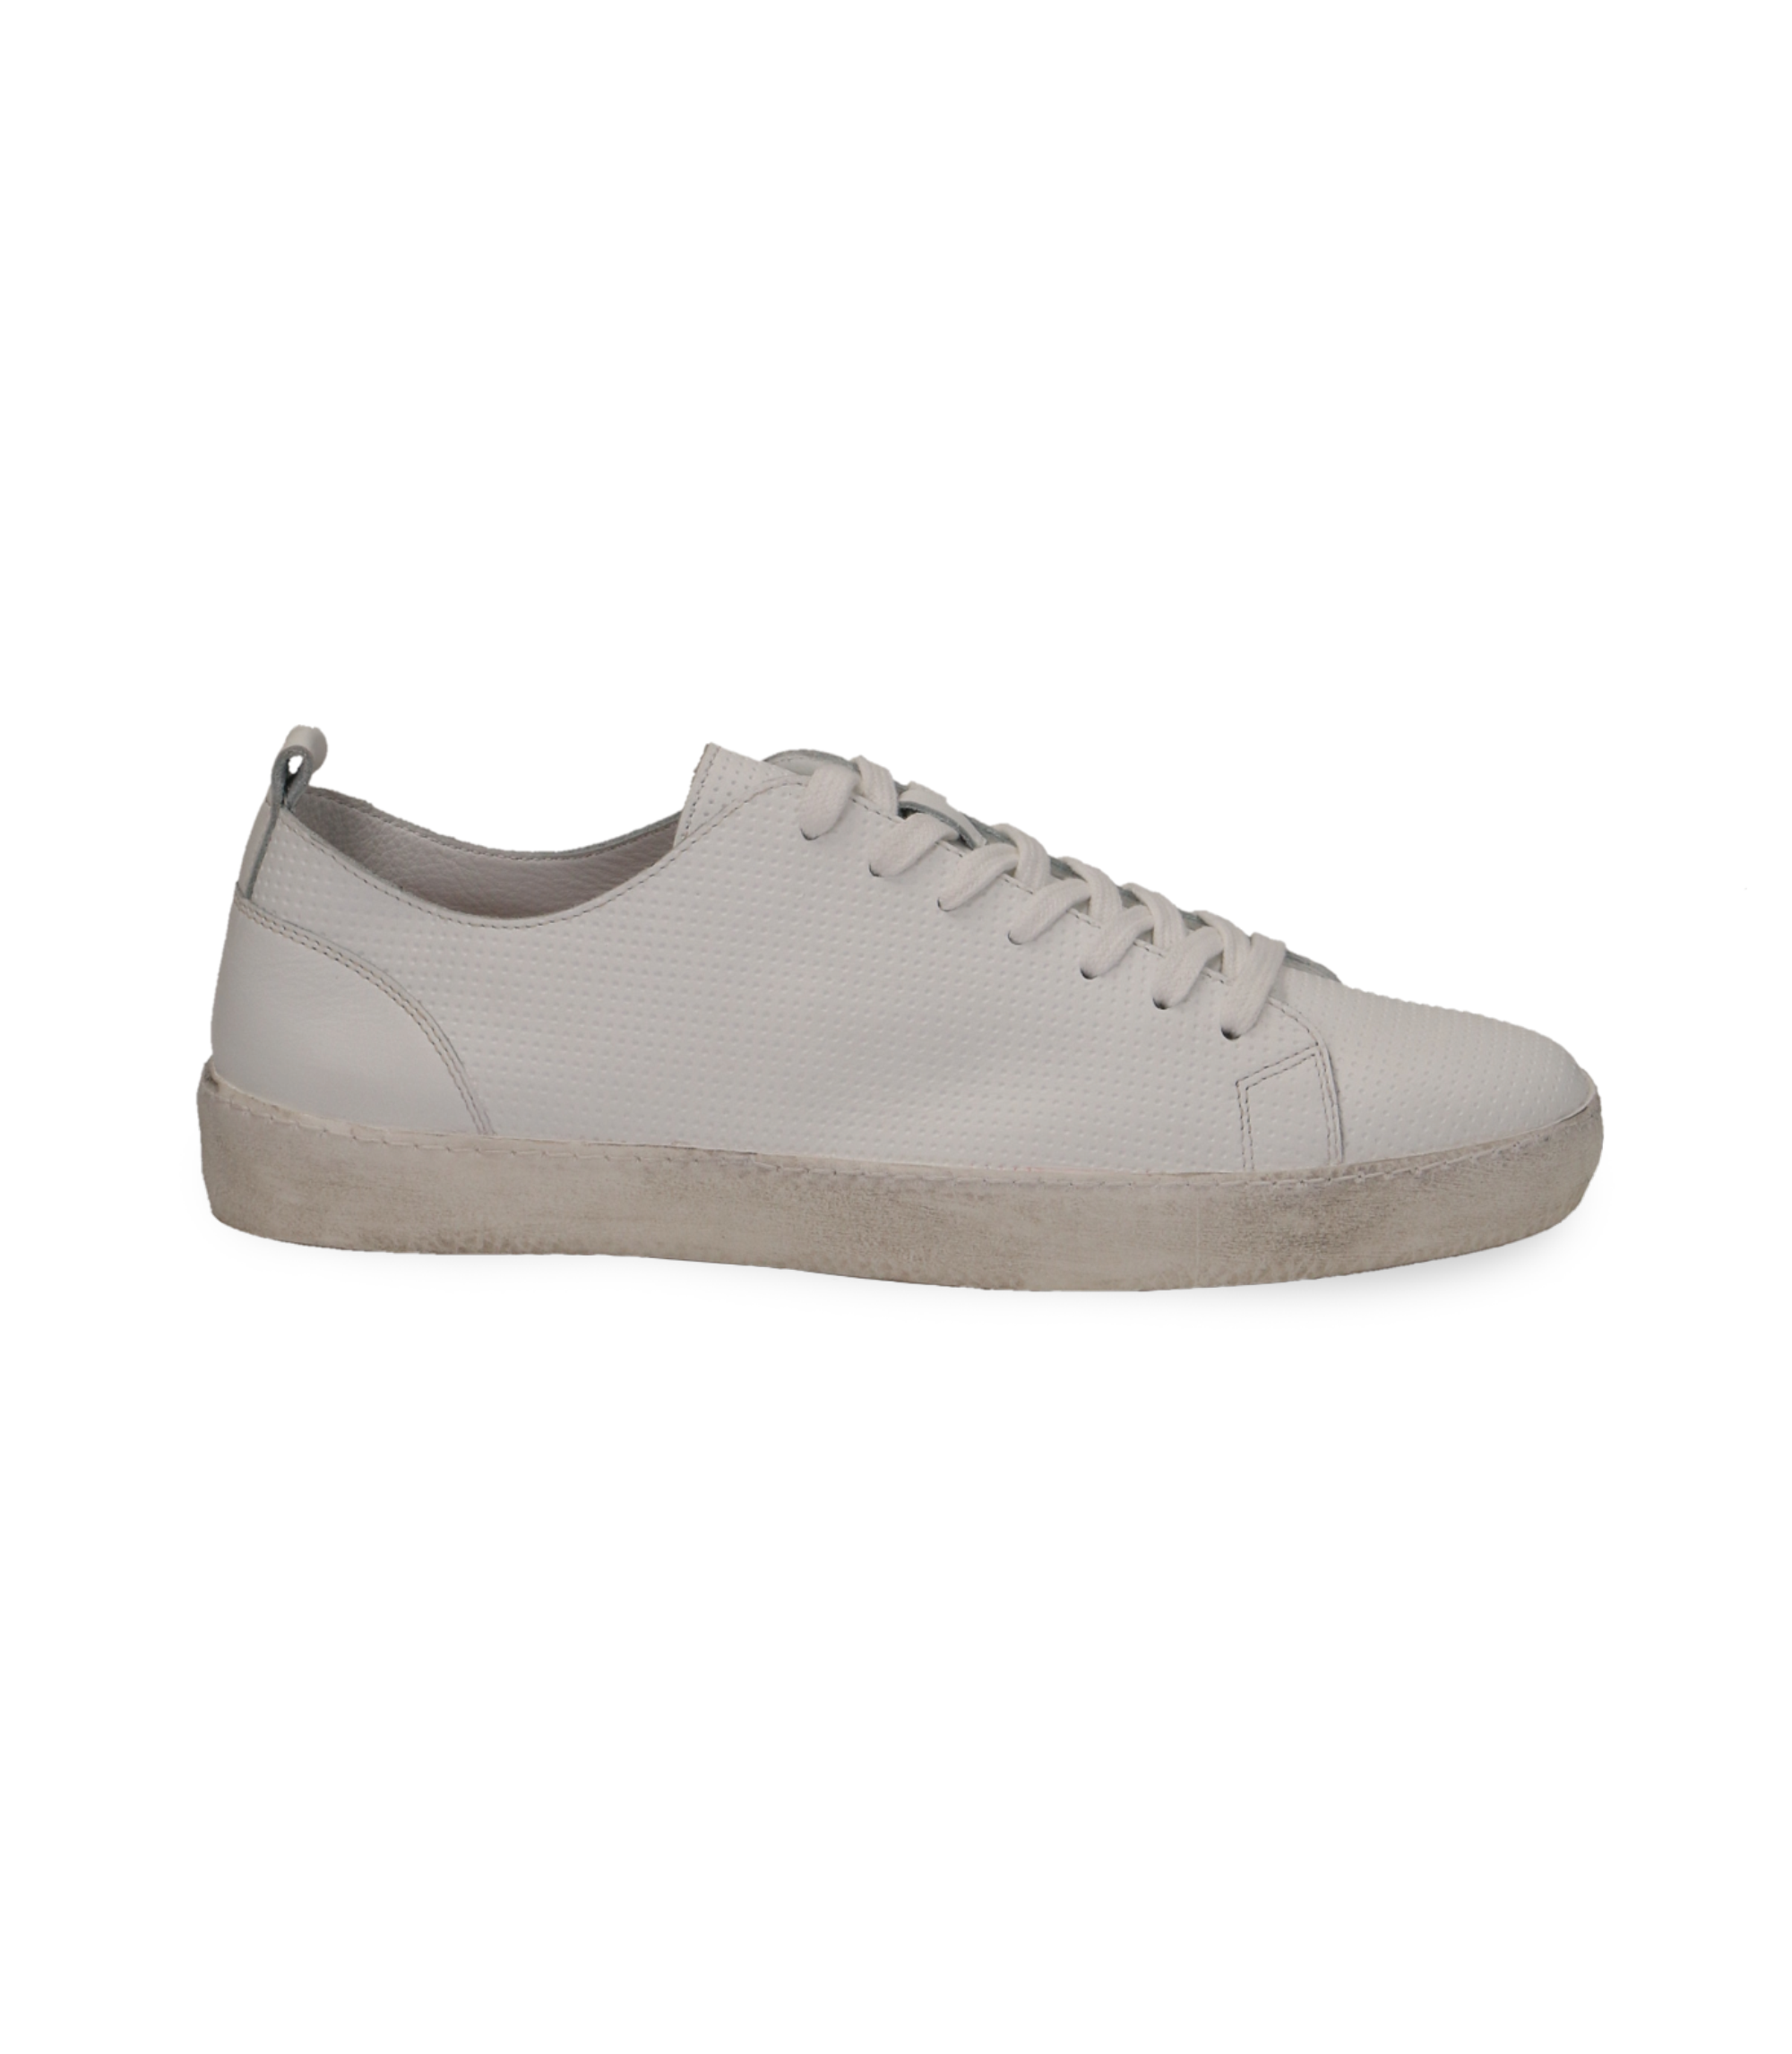 Sneakers bianche in pelle con suola bianca